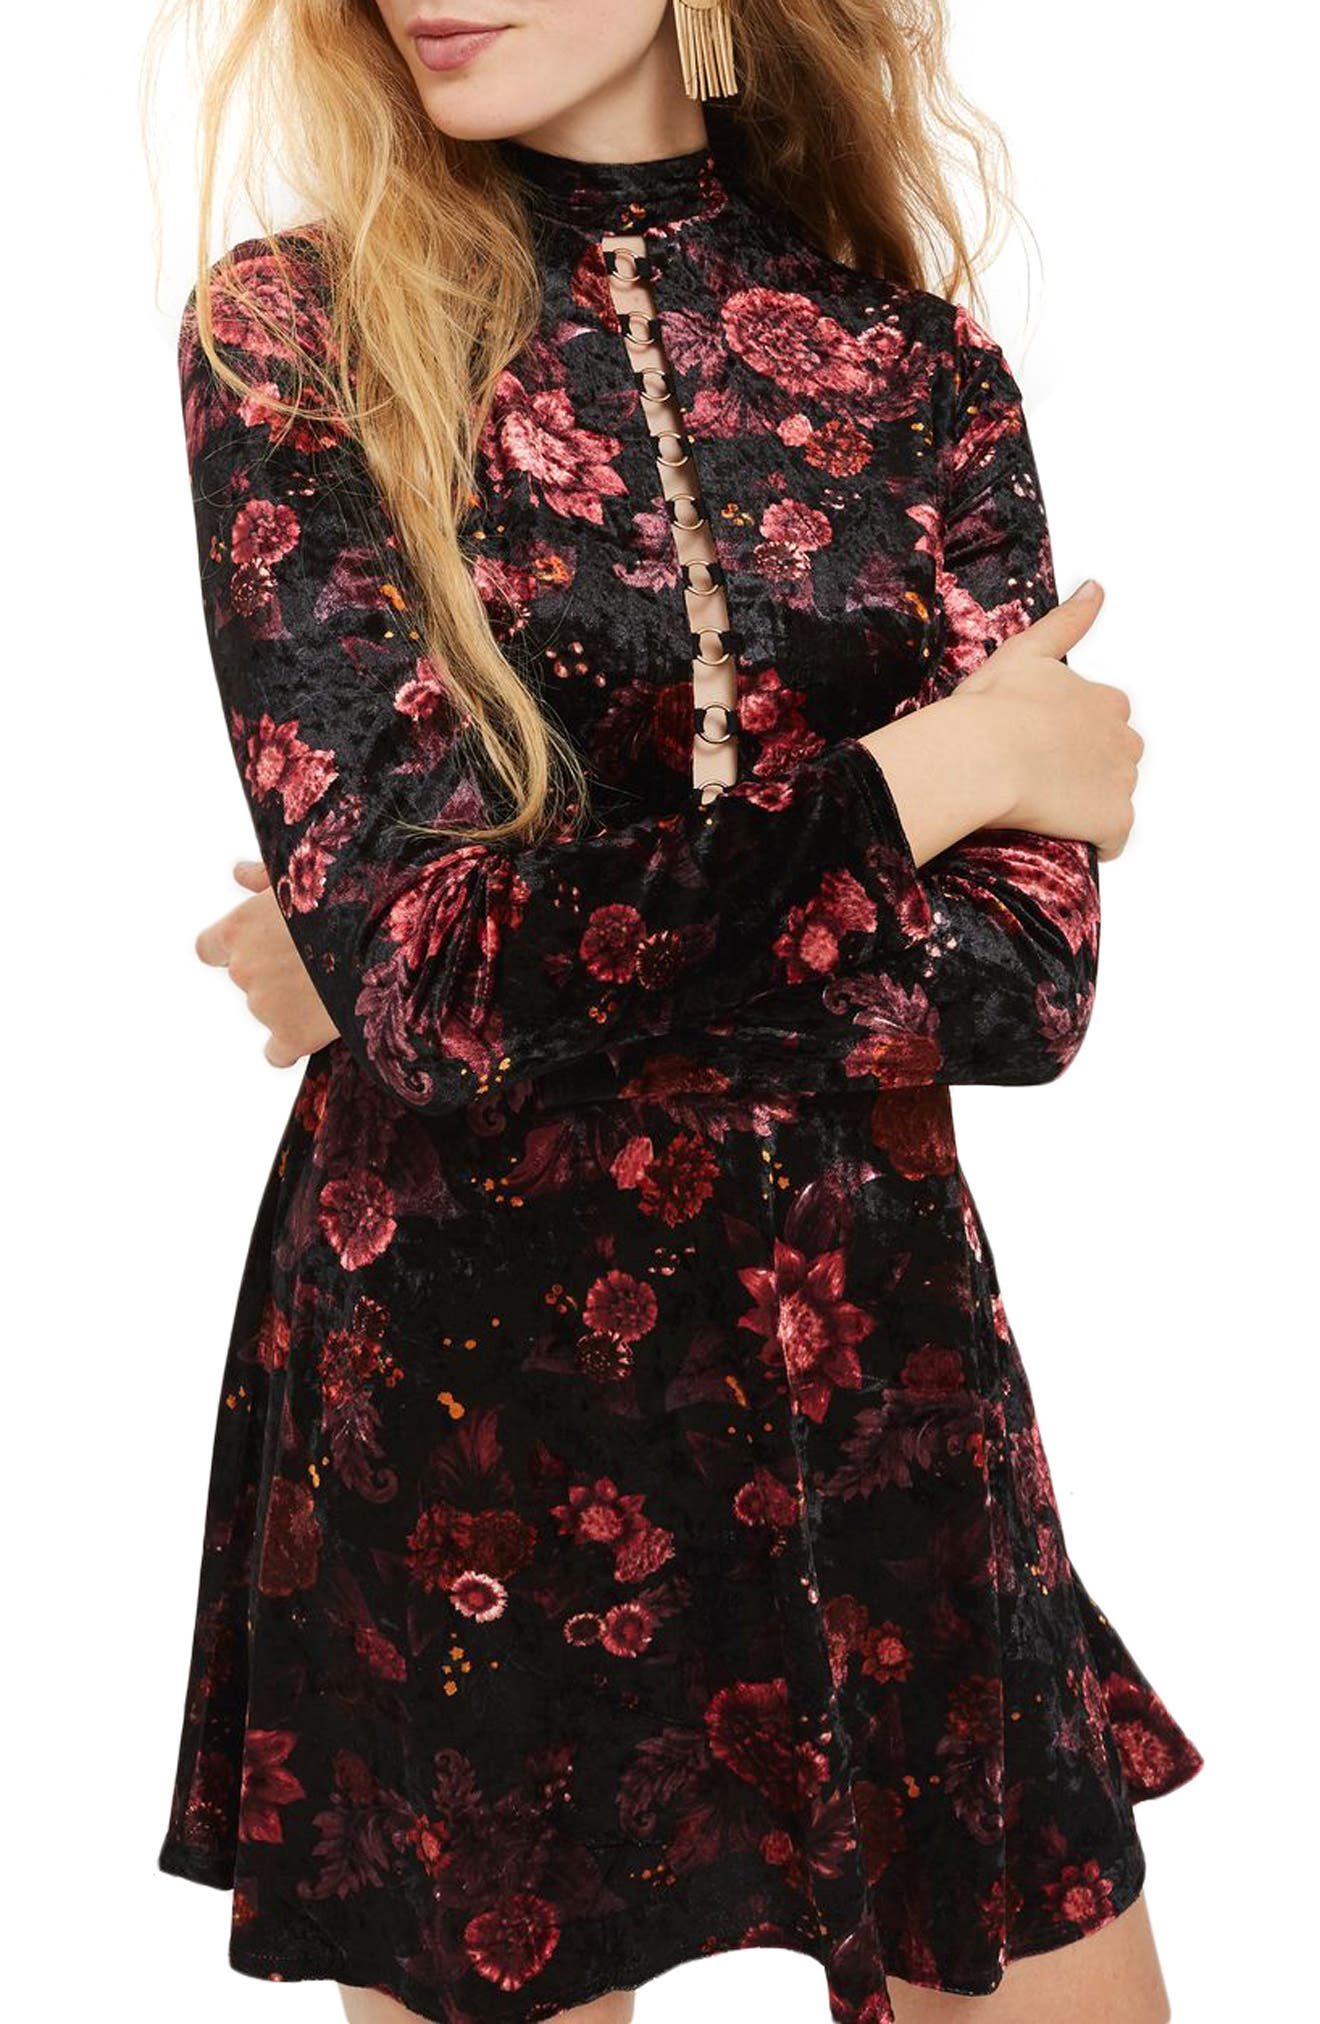 Ring Lace Up Floral Velvet Skater Dress,                             Main thumbnail 1, color,                             001